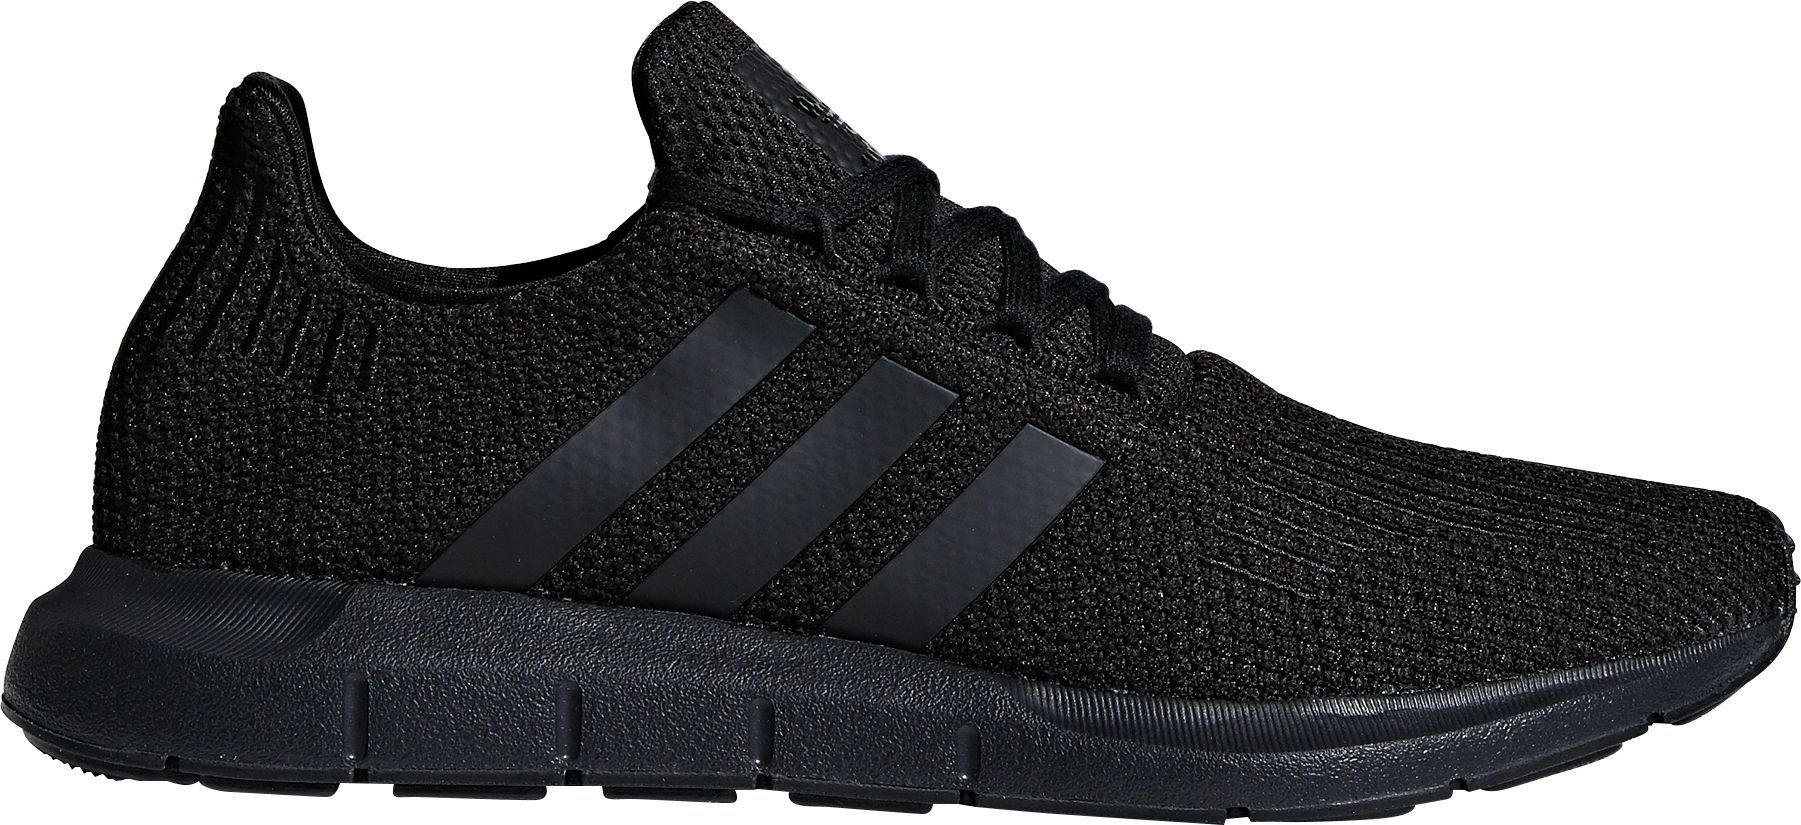 reputable site 2d745 57e54 adidas Originals Men s Swift Run Shoes, Black